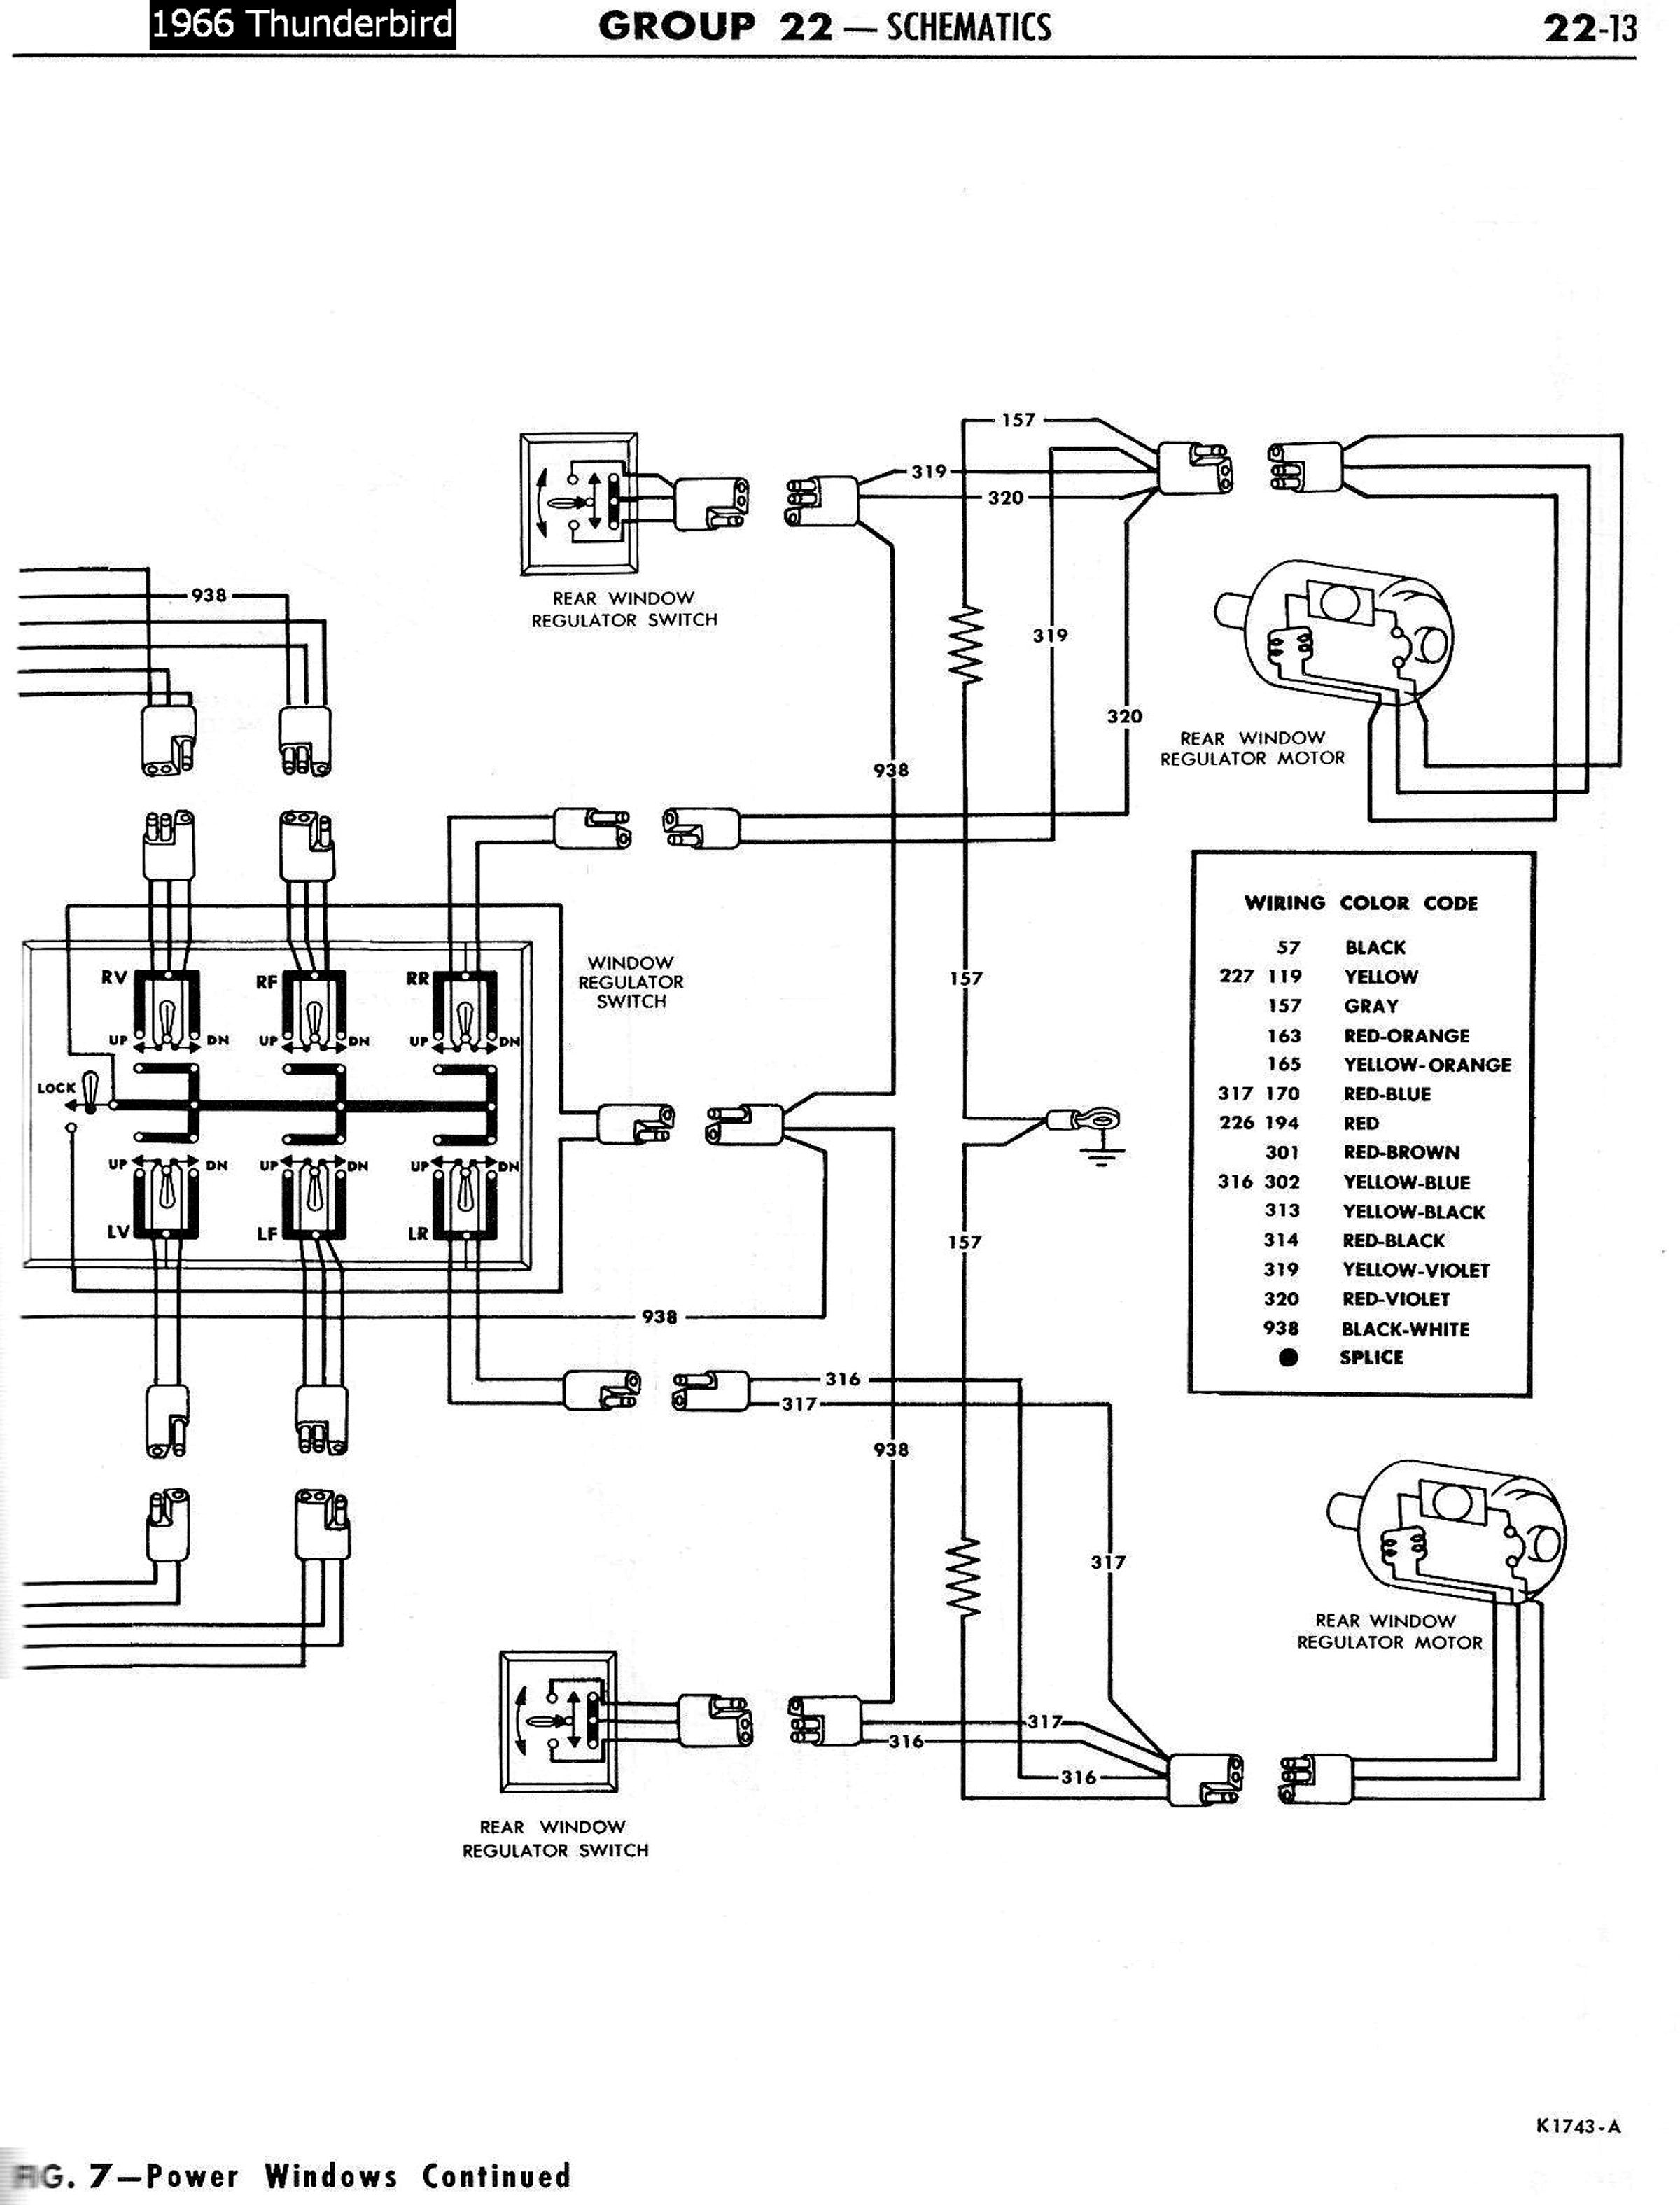 68 mustang turn signal wiring diagram wiring diagram pictures  1968 f100 blinker wiring diagrams opinions about wiring diagram \\u2022 1968 mustang instrument panel diagram 68 mustang turn signal wiring diagram